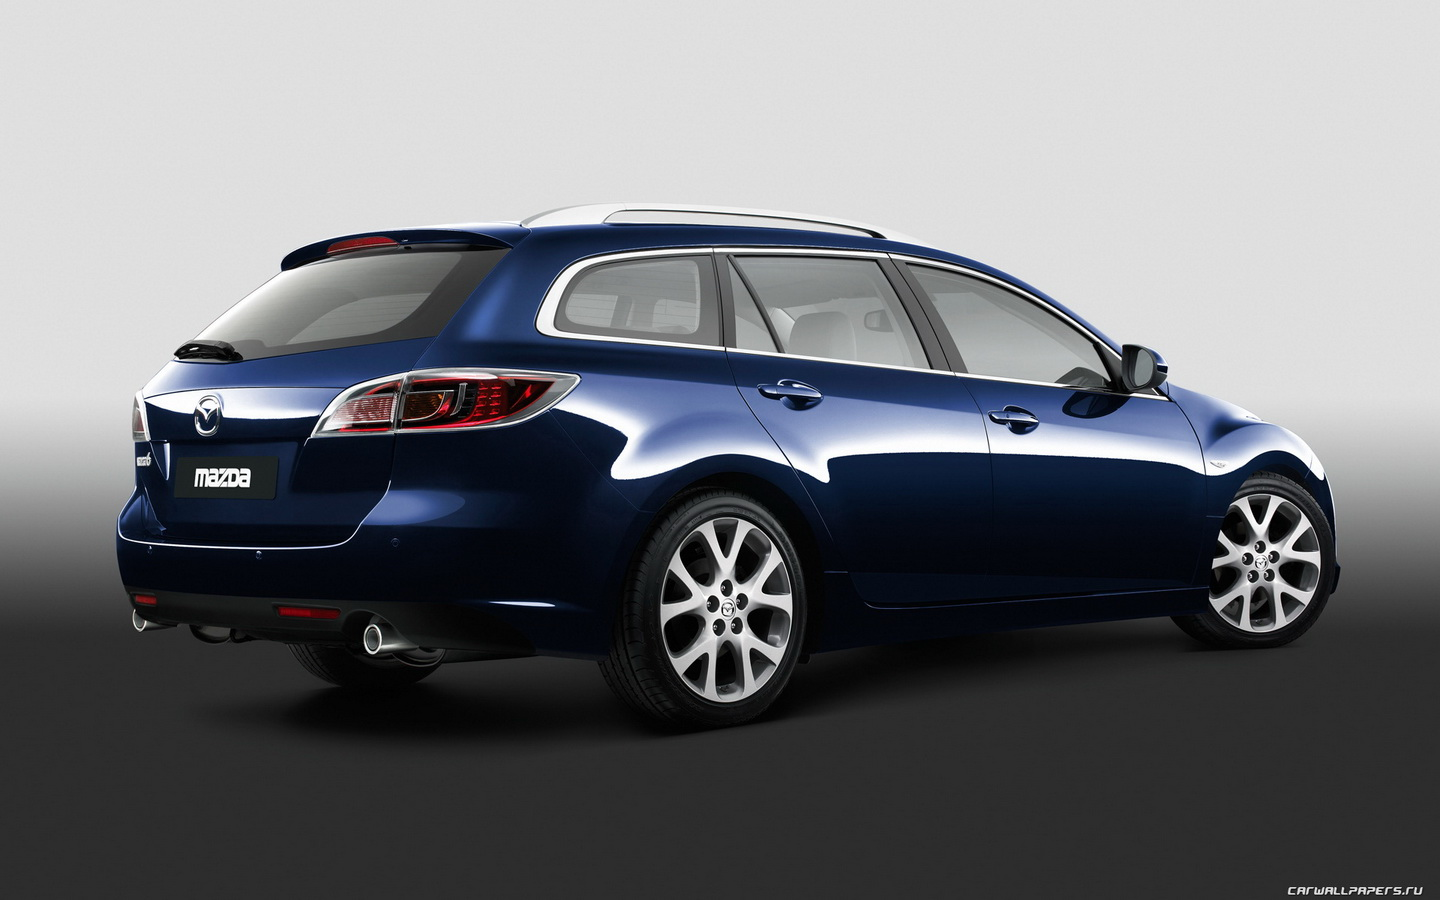 2008 Mazda Mazda 6 wagon – pictures information and specs